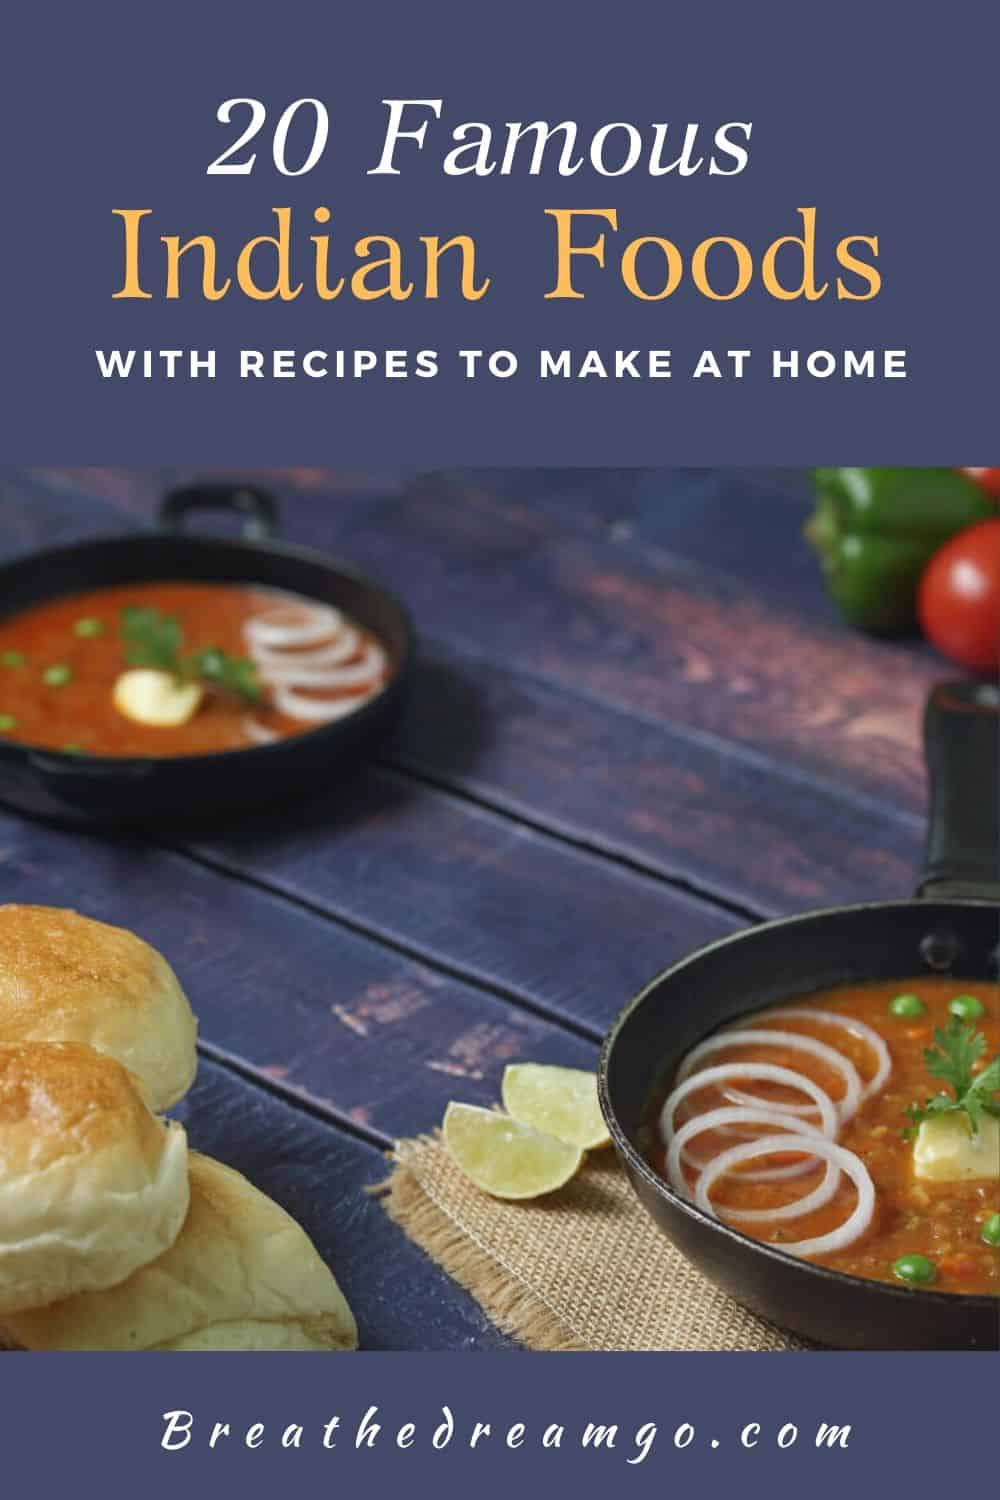 20 Famous Indian Foods with recipes